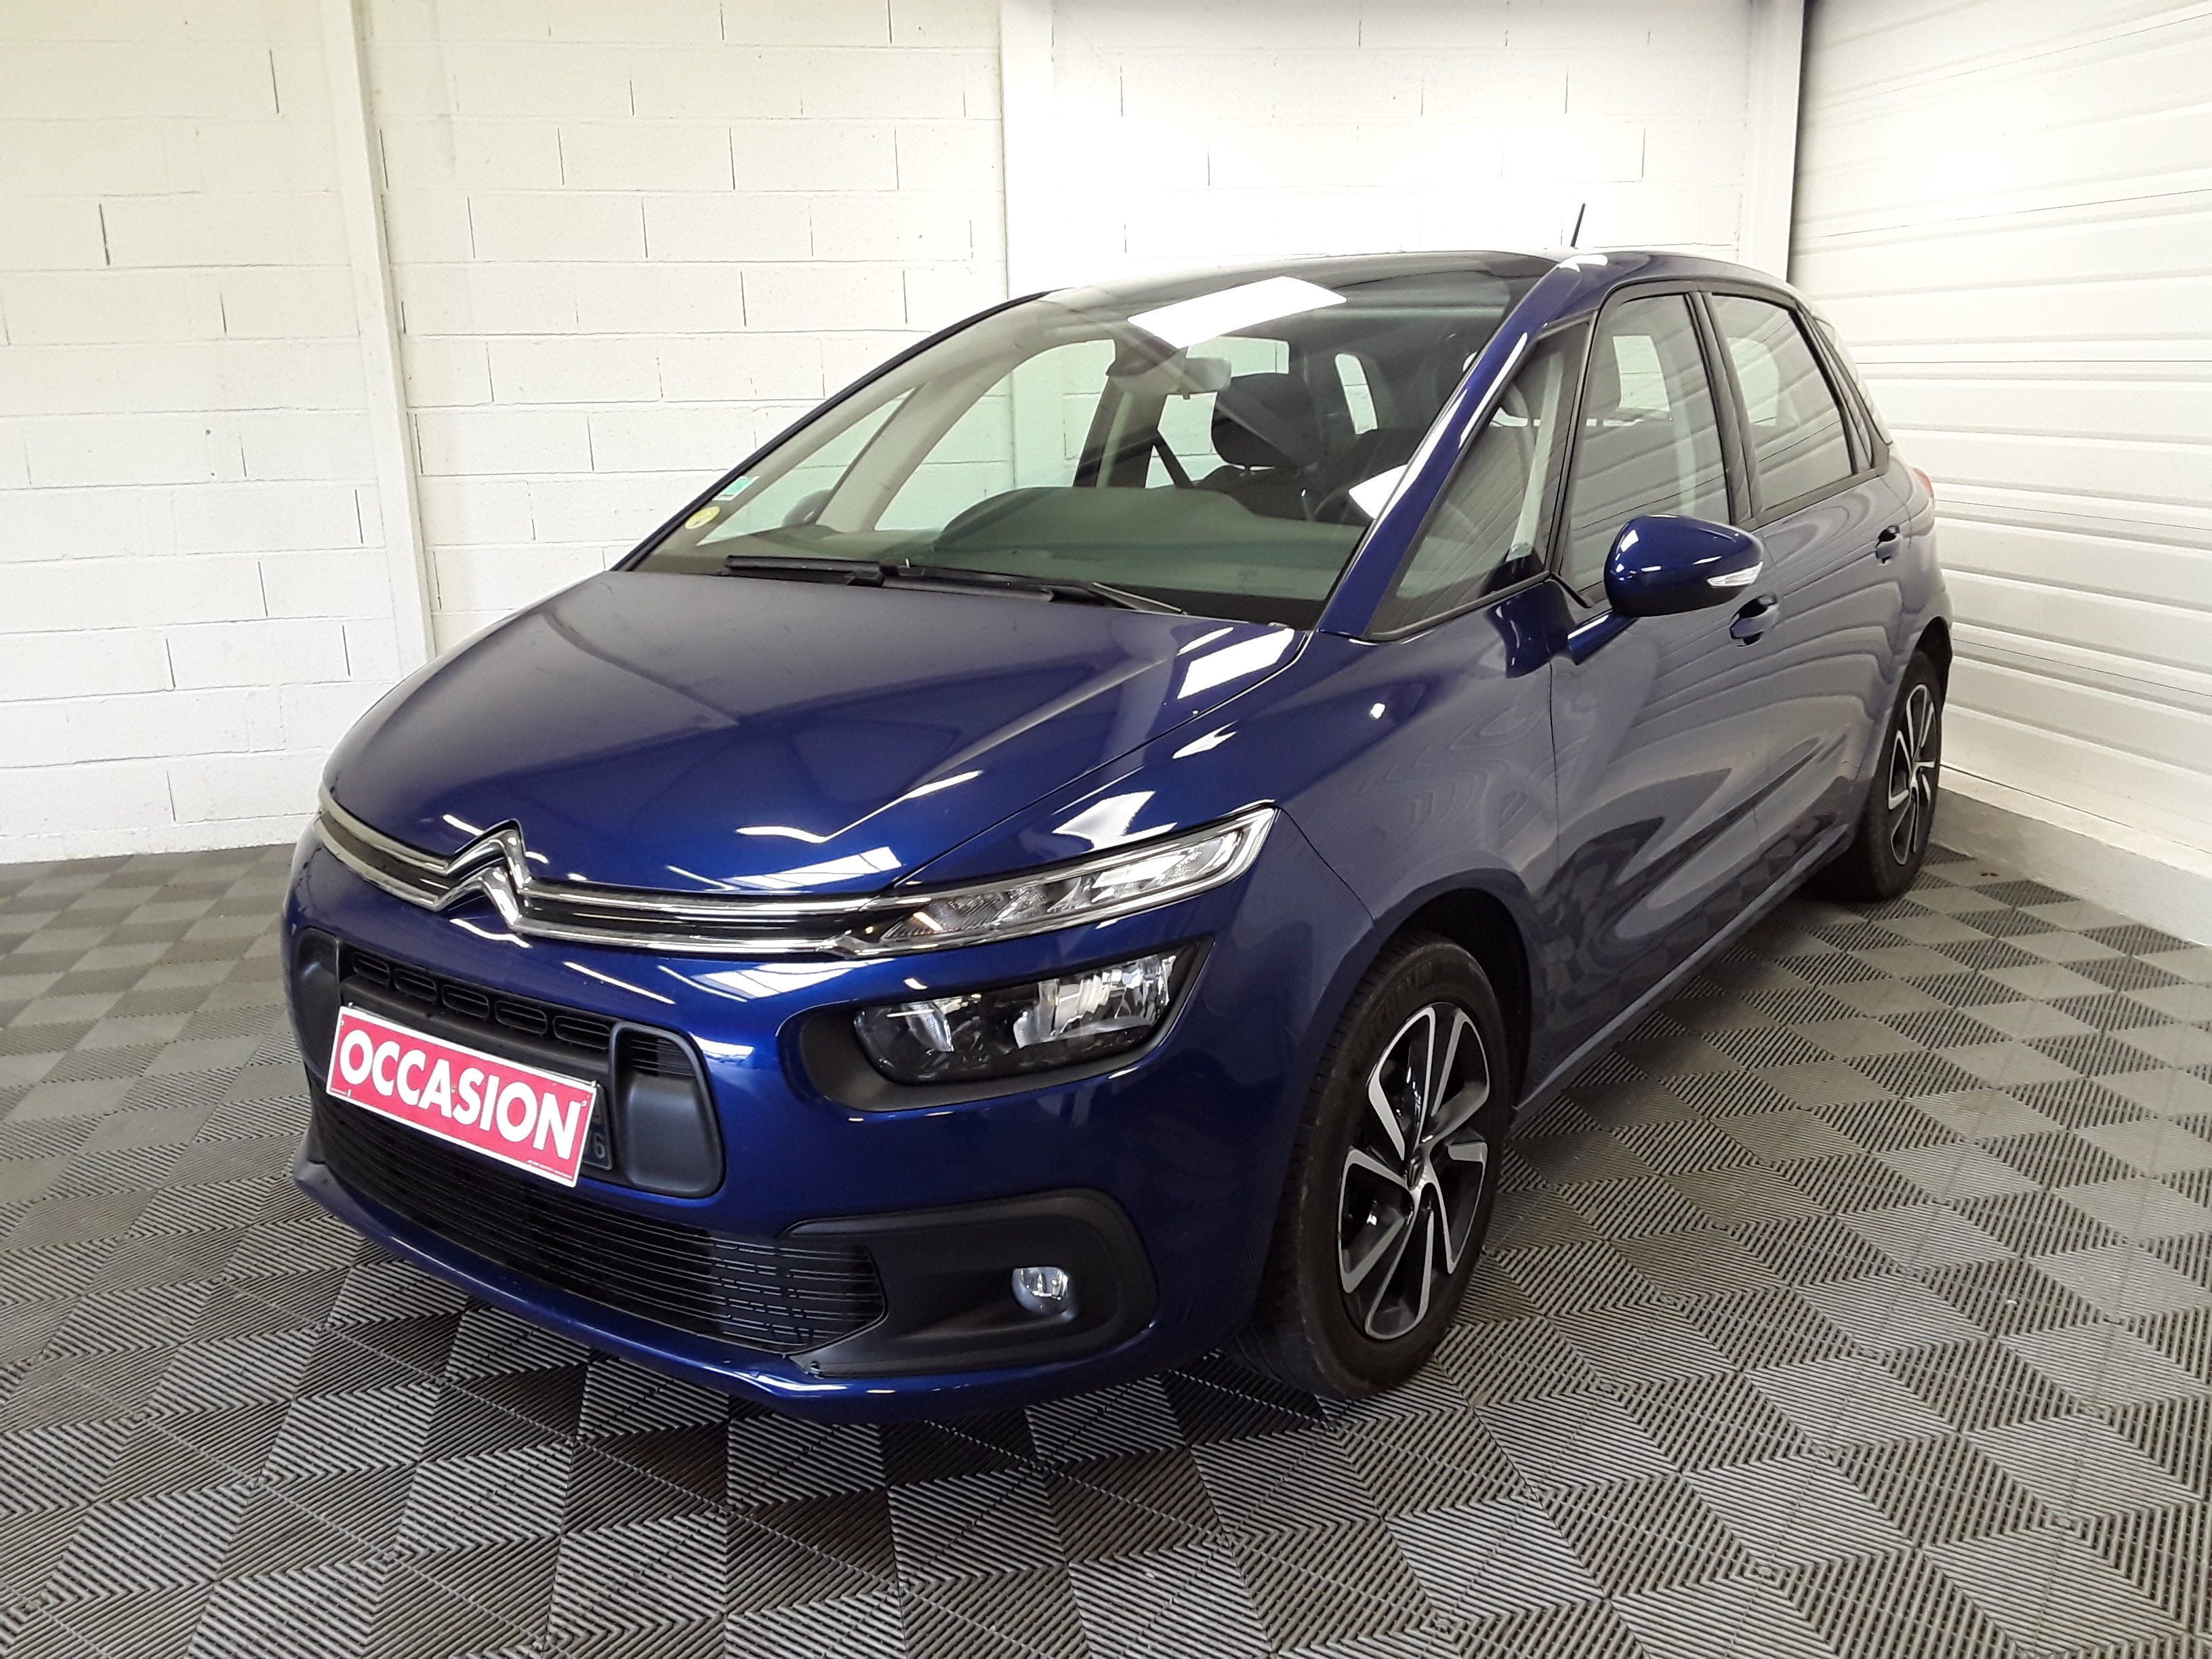 CITROEN C4 SPACETOURER 2018 - Photo n°1